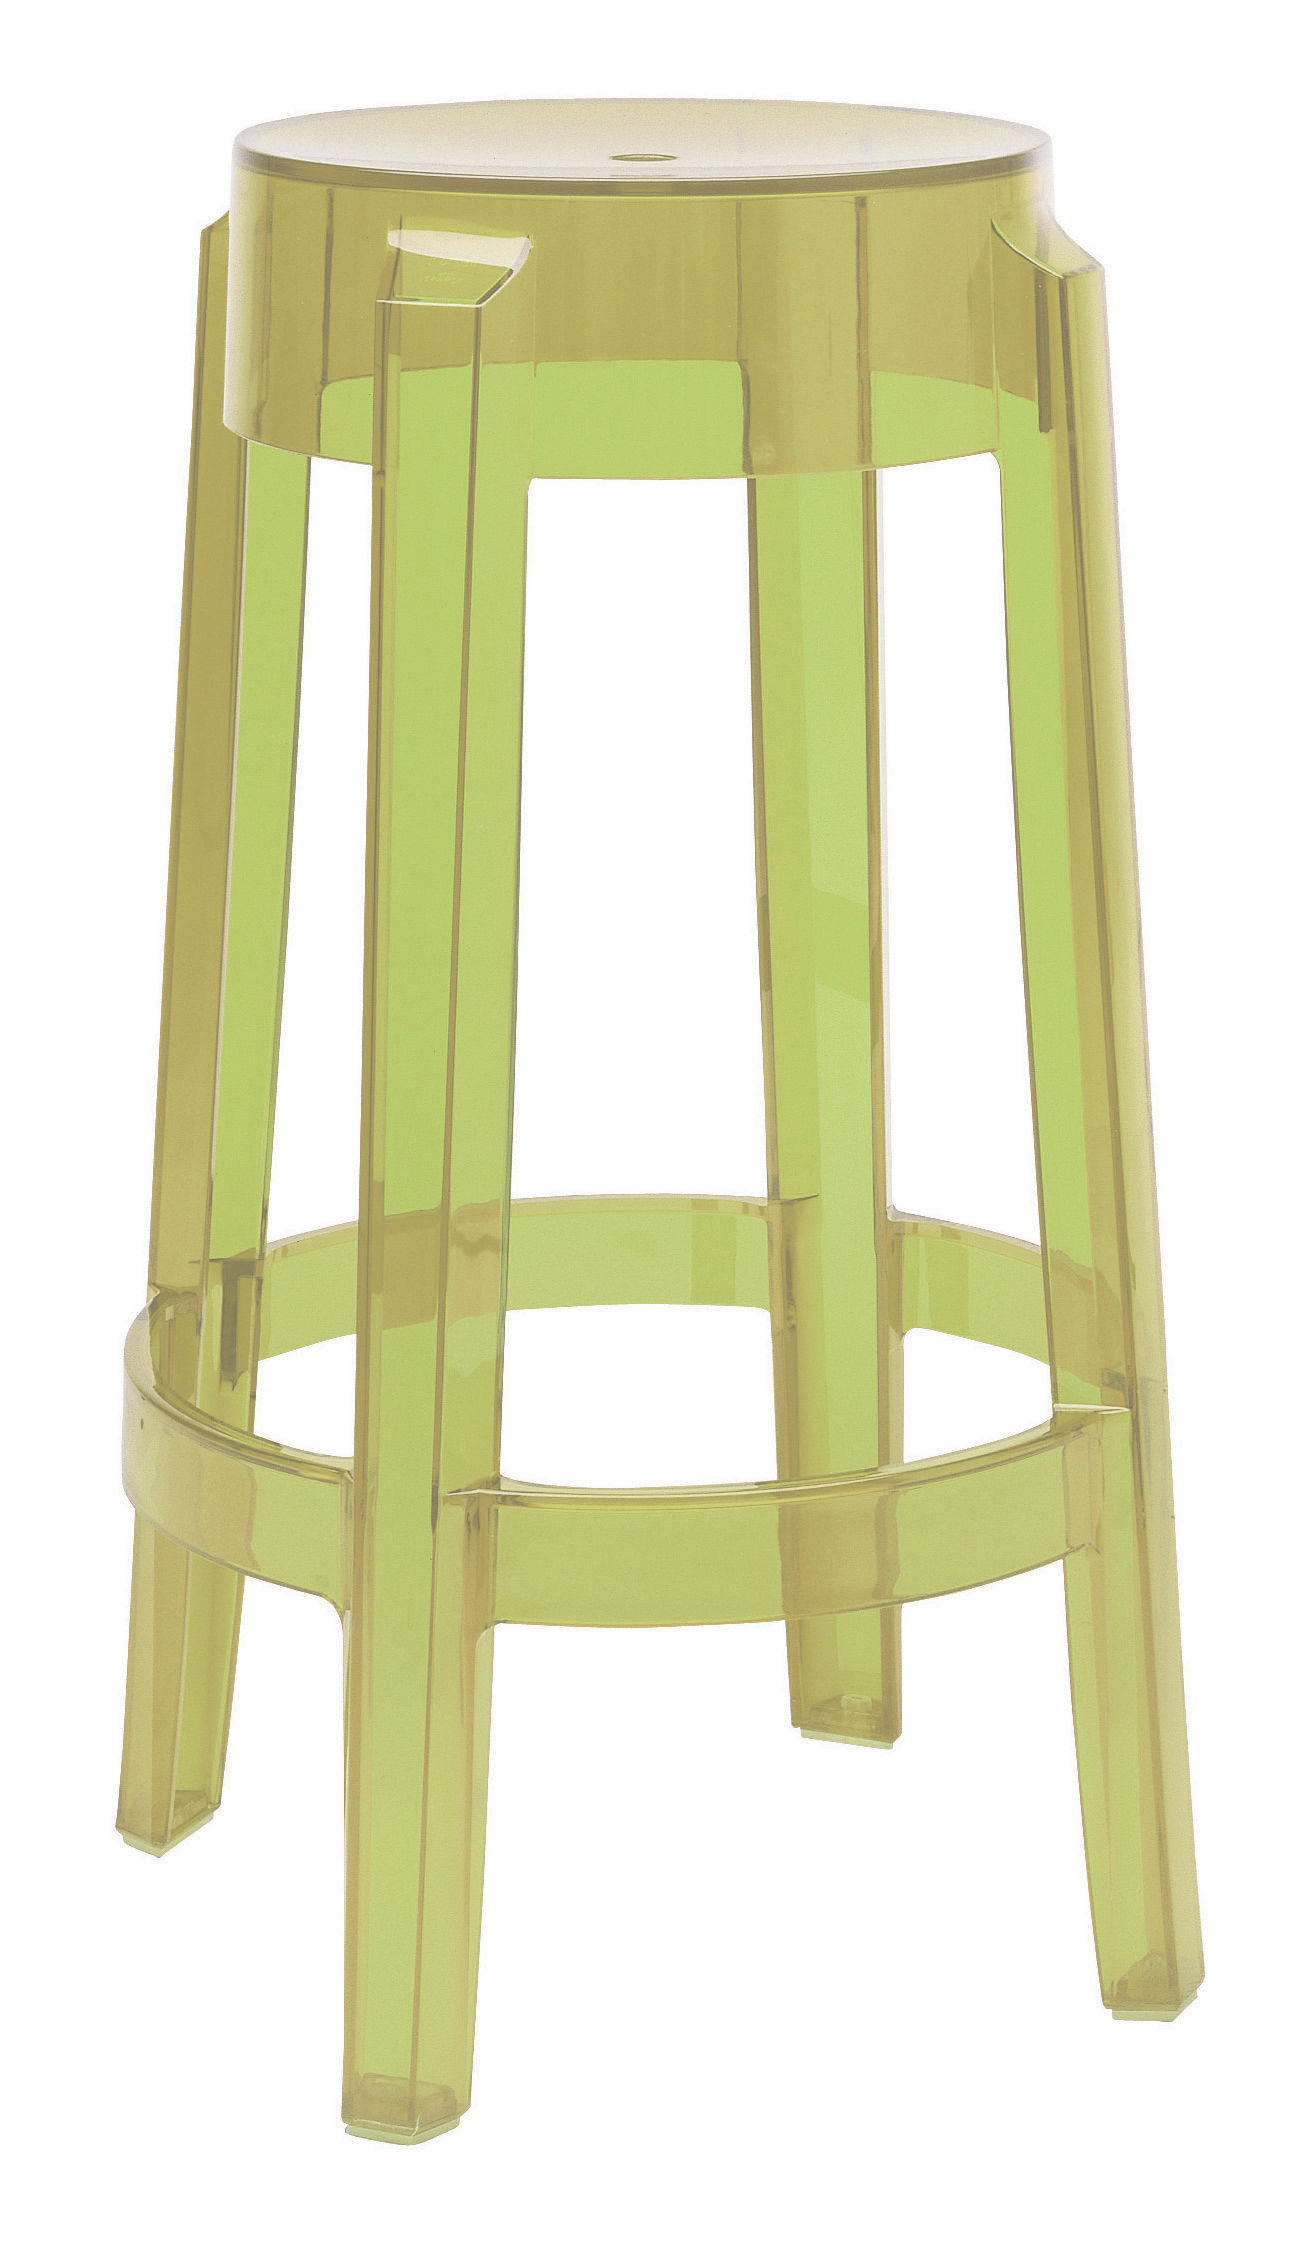 Tabouret haut empilable charles ghost h 65 cm plastique vert kartell - Tabouret plastique empilable ...